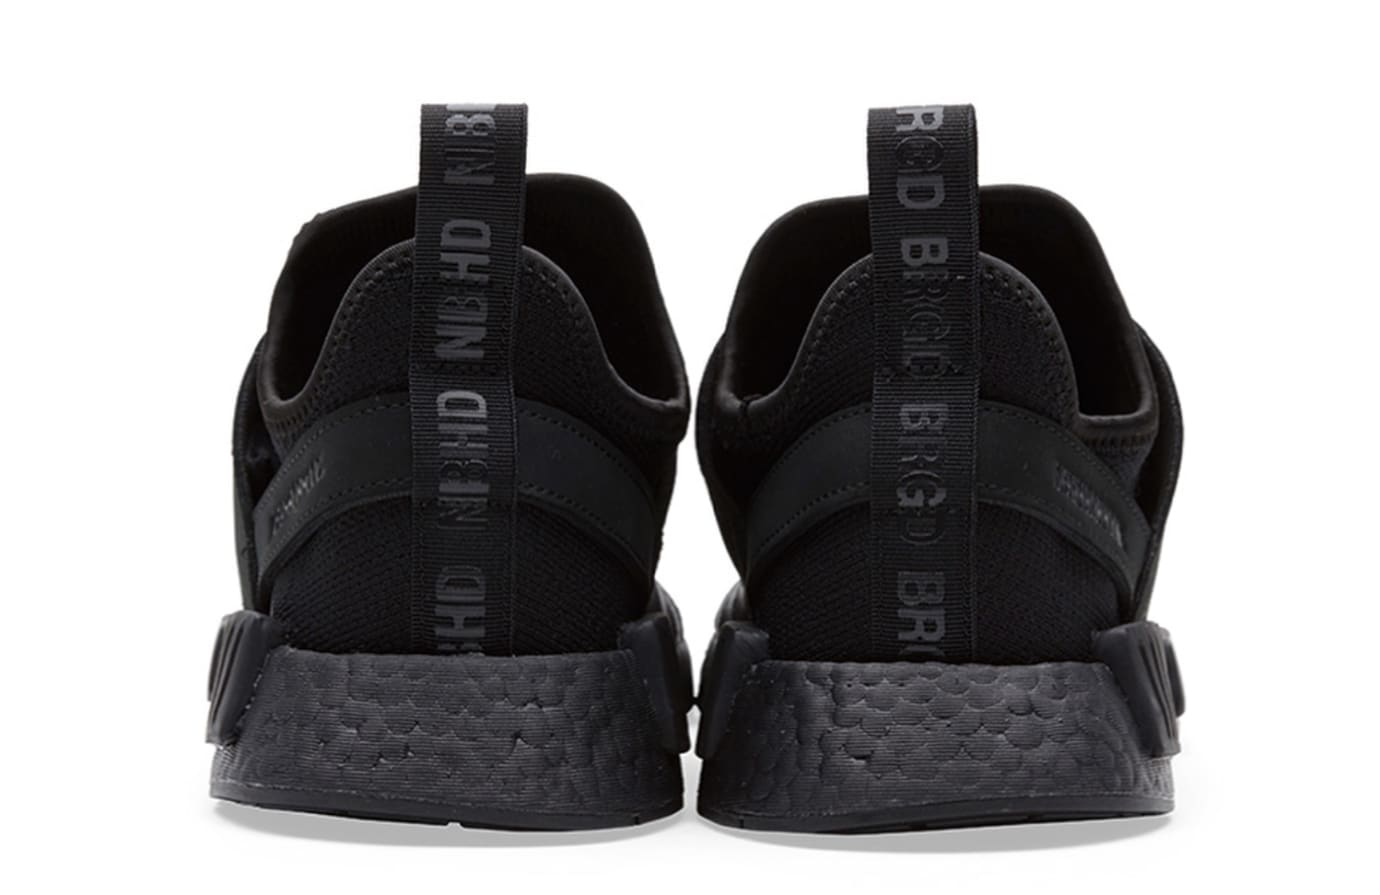 6e0046c43842c Image via neighborhood official · Neighborhood x Adidas NMD R1 PK  Triple  Black  (Heel)